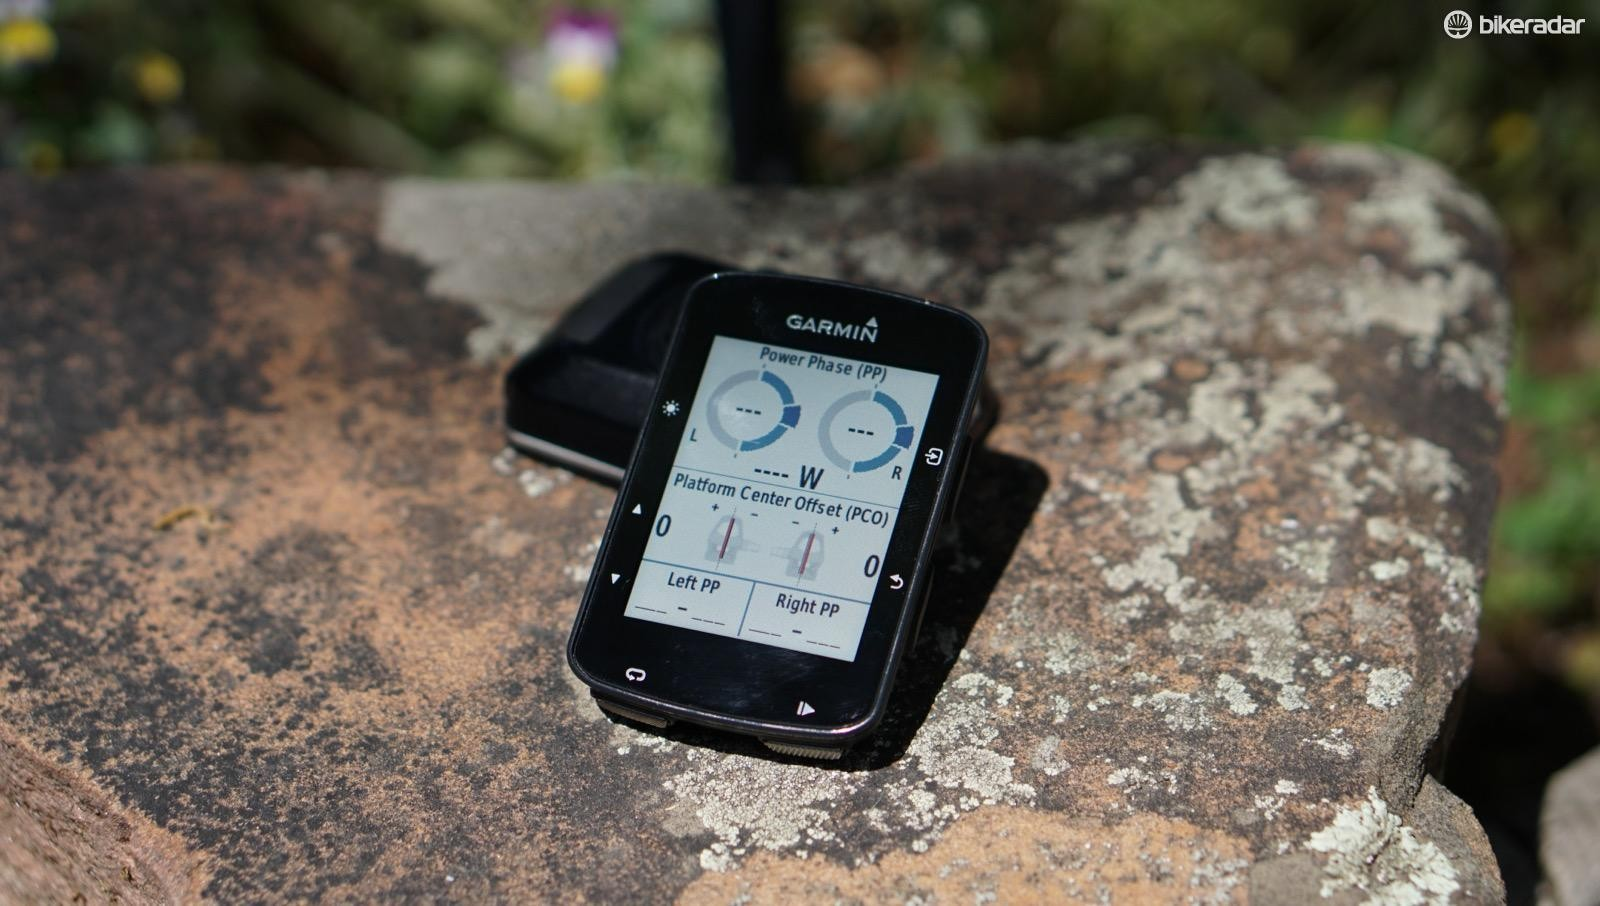 Some of the 520 Plus features require more Garmin products, such as Vector pedals for Cycling Dynamics, or a Varia rear radar for approaching vehicle alerts